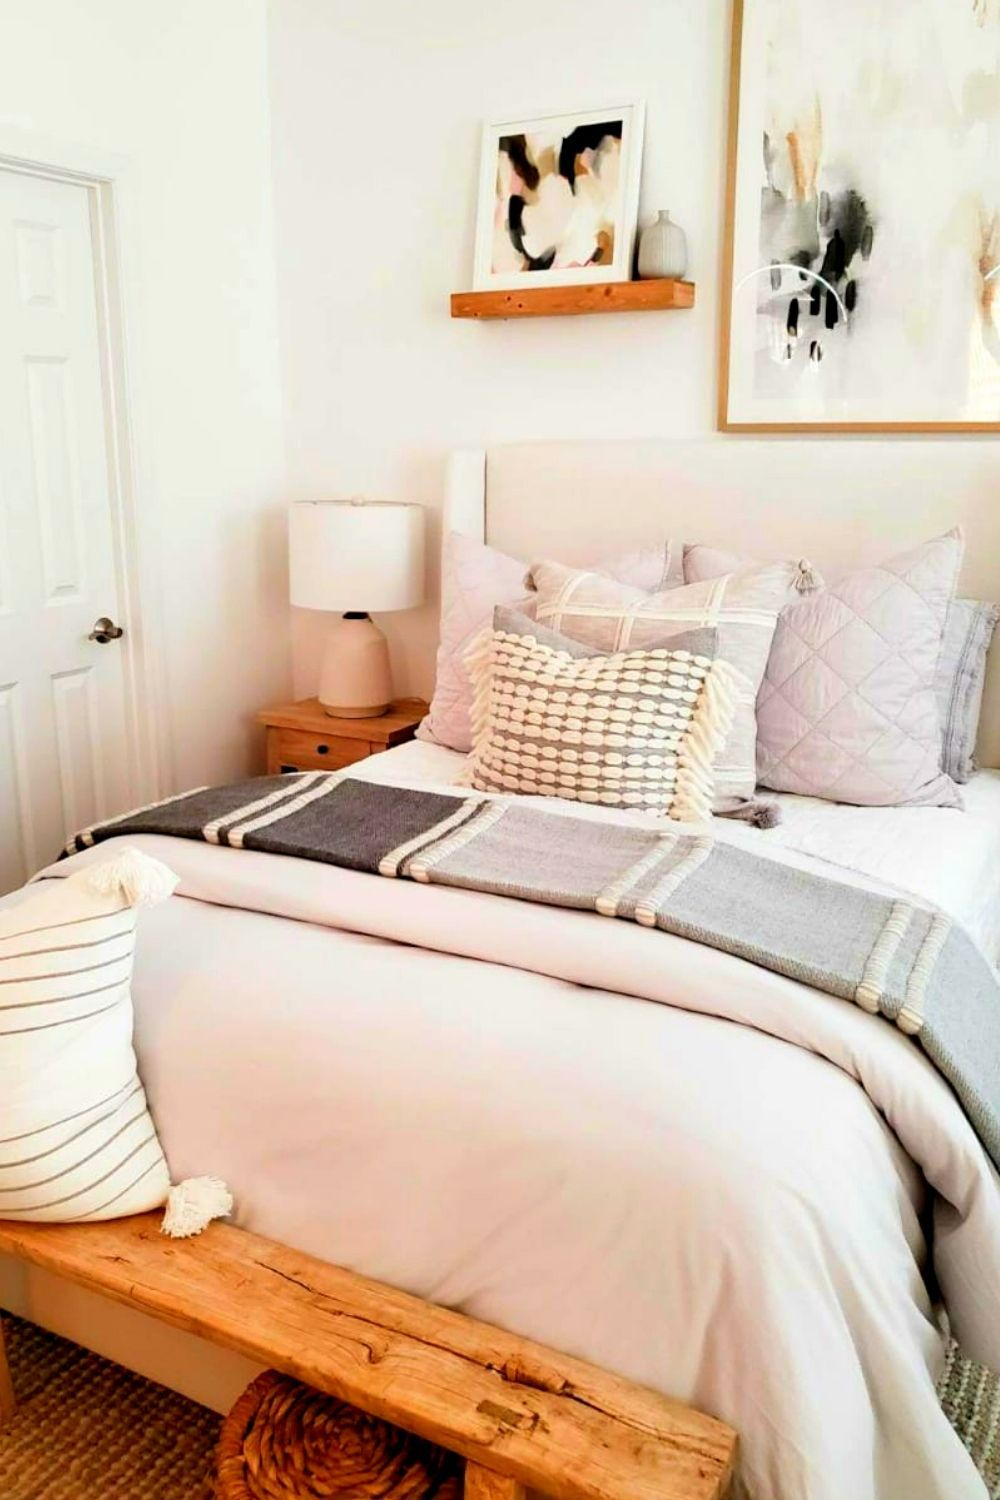 There are many unique minimalist bedroom interior designs that you can sample on the internet. However, in addition to this uniqueness, consider these things first..#minimalistbedroom#bedroominterior#bedroominteriordesign#minimalistbedroomideas#minimalistbedroomdecoration#bedroom#bedroomideas#bedroomdecor